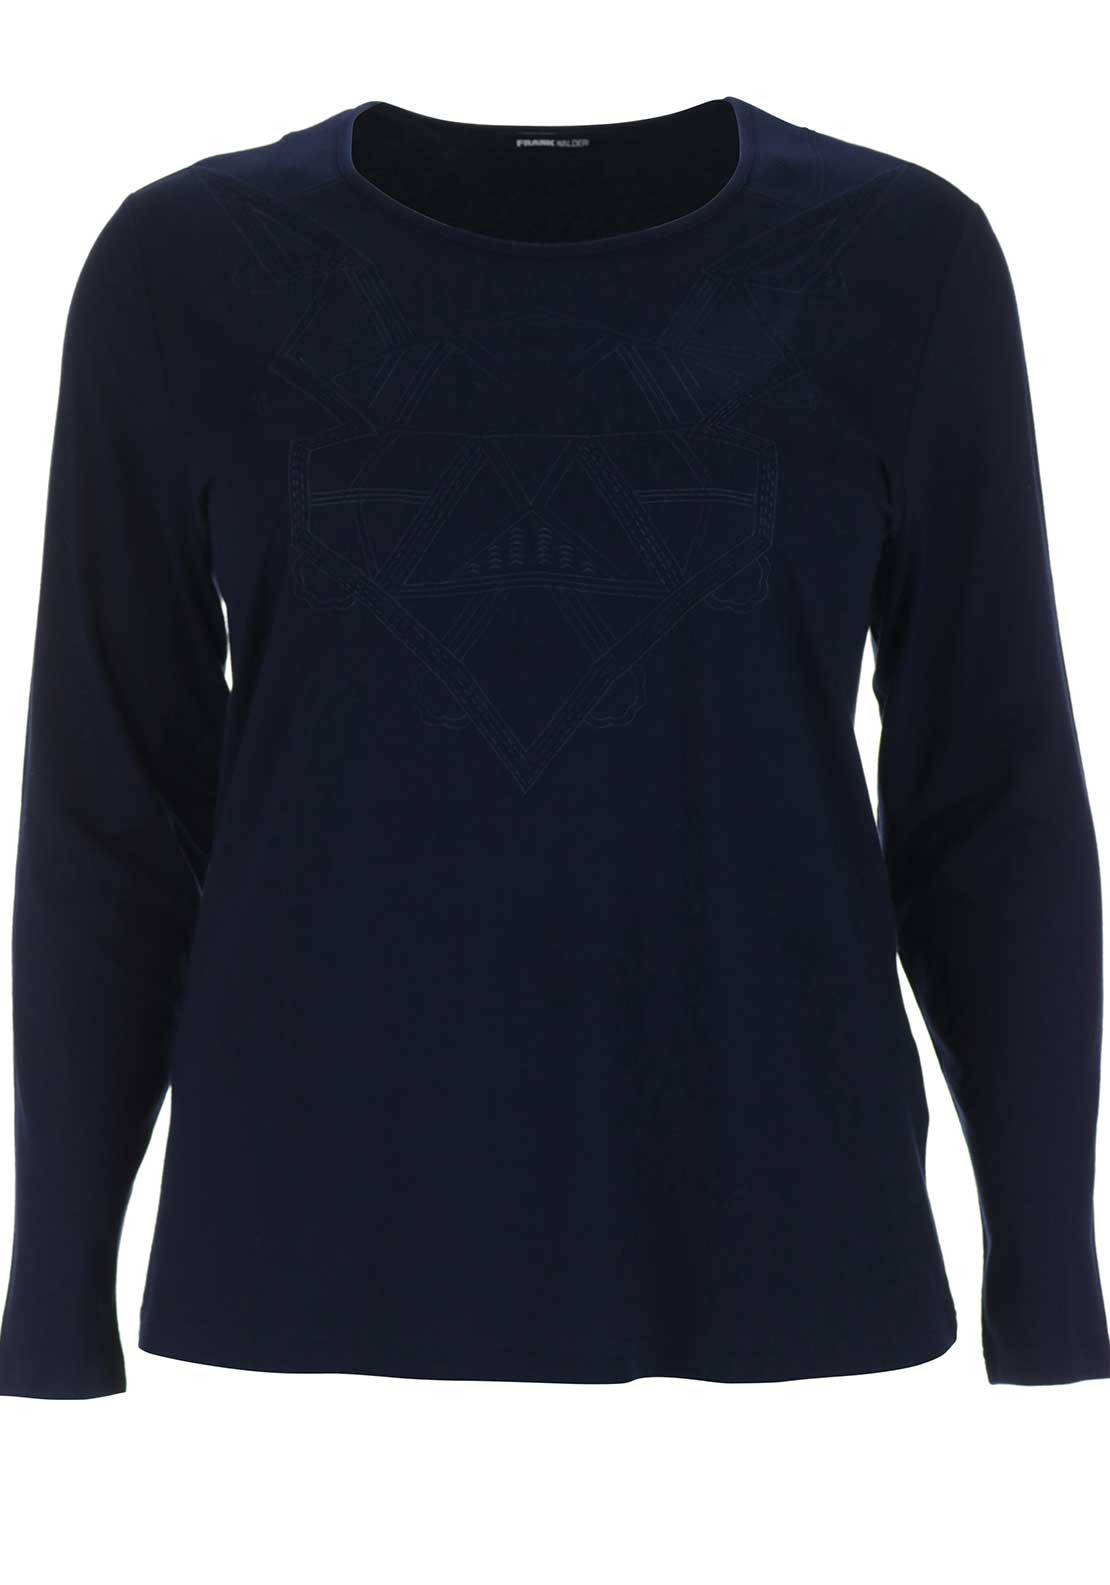 Frank Walder Embroidered Print Top, Navy